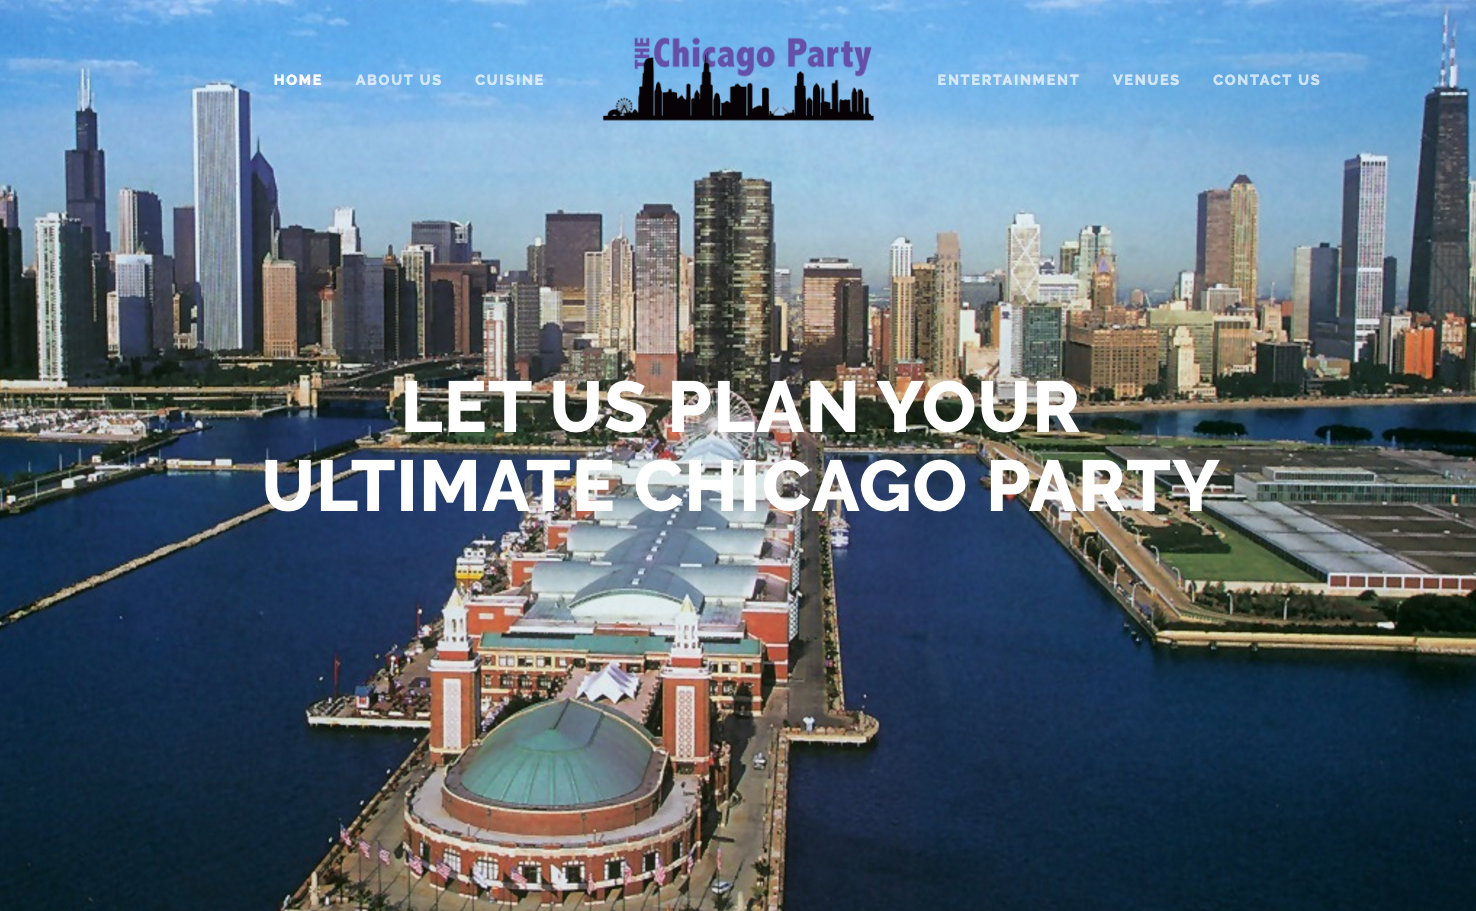 The Chicago Party